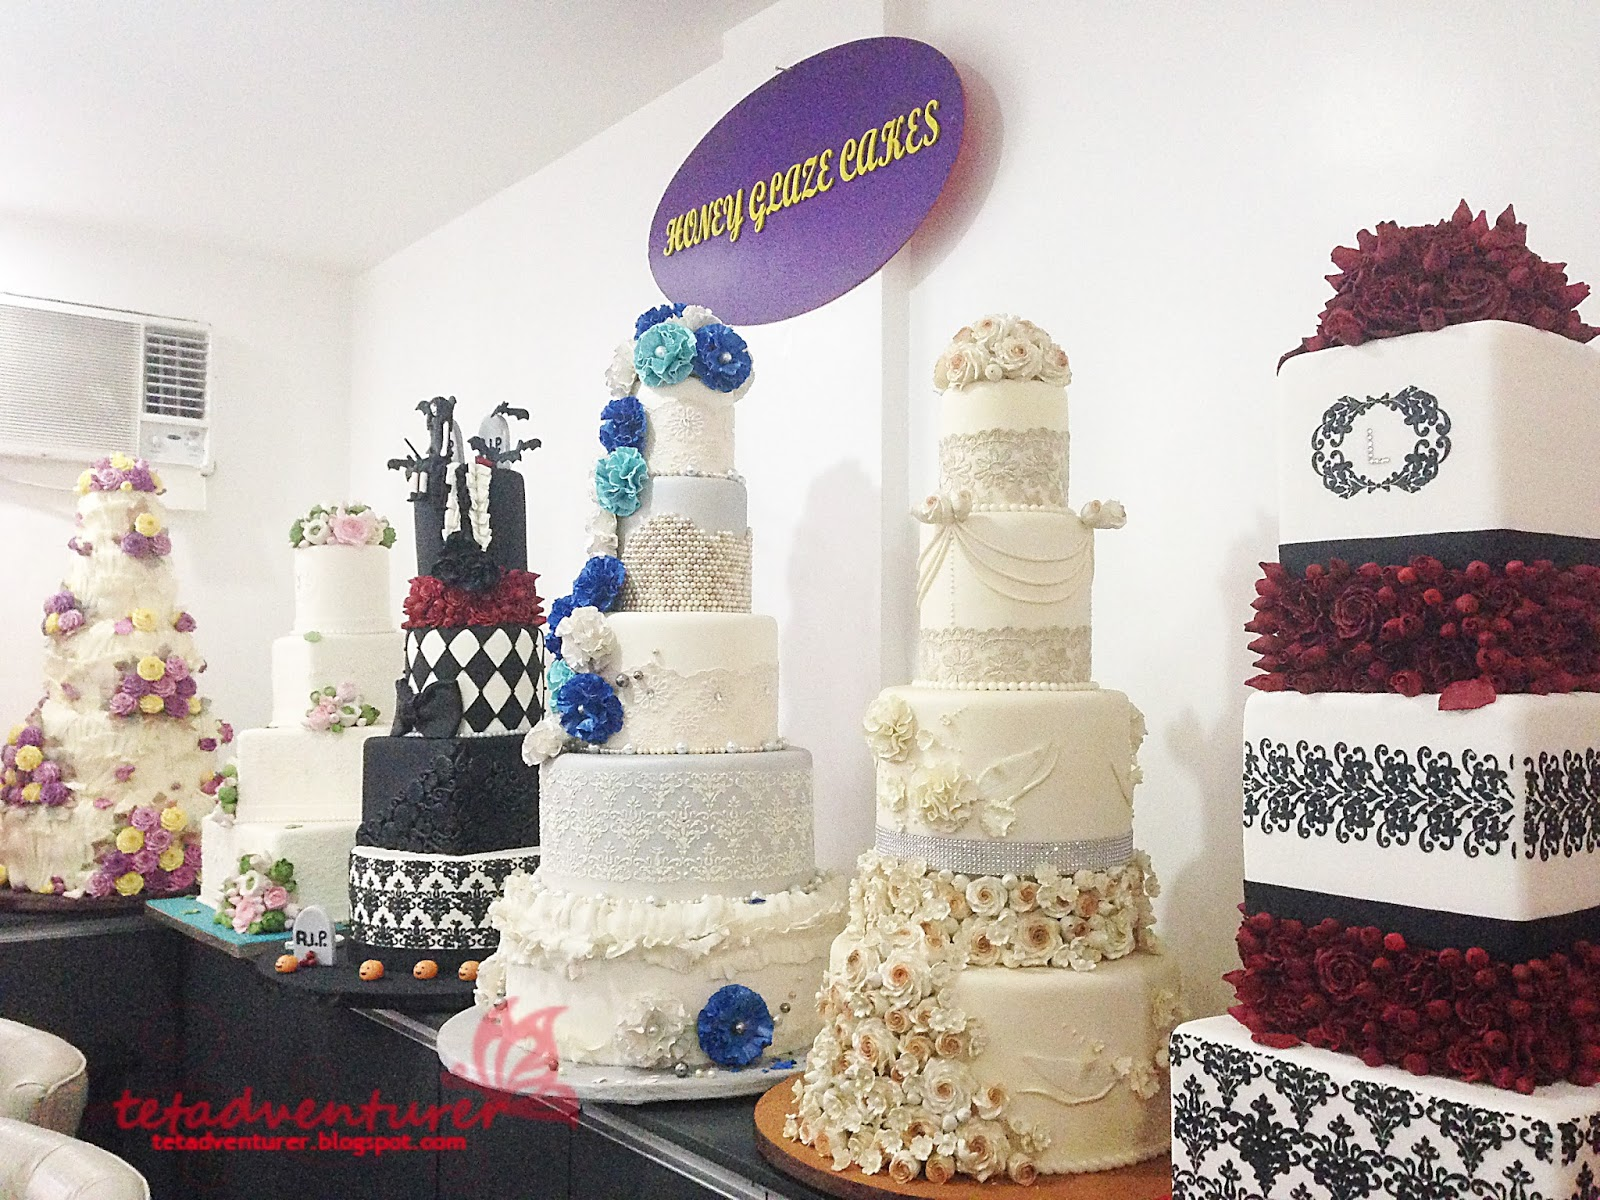 tetadventurer: wedding 101: cake tasting @ honey glaze cakes!